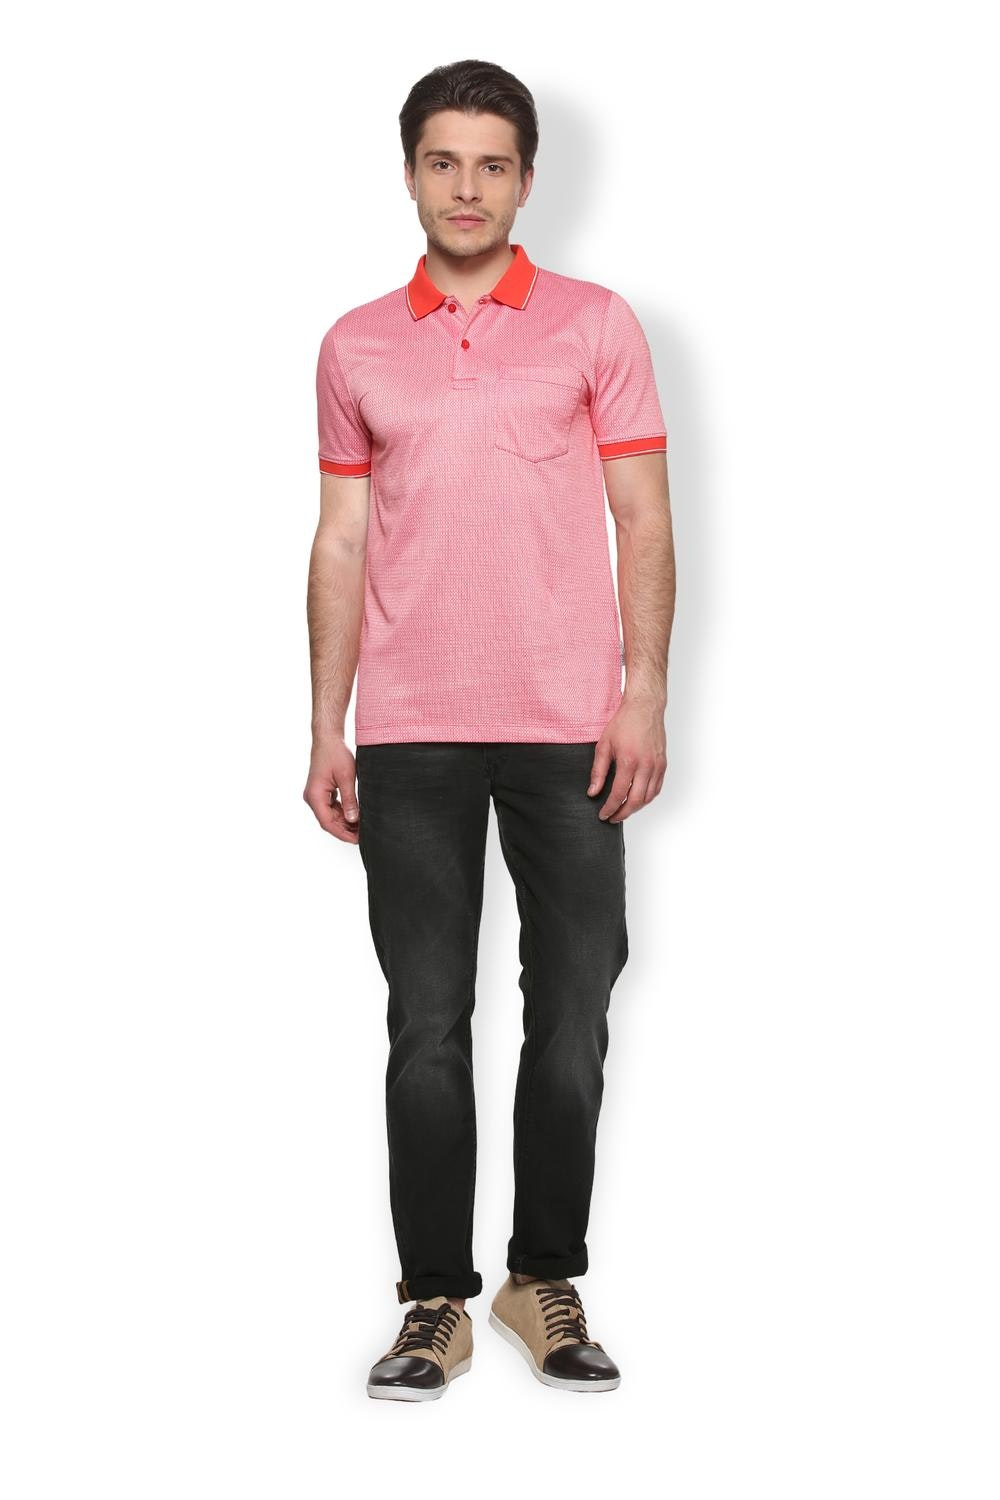 b94ca7184df Buy Van Heusen Men s T Shirt - Buy T Shirts Online